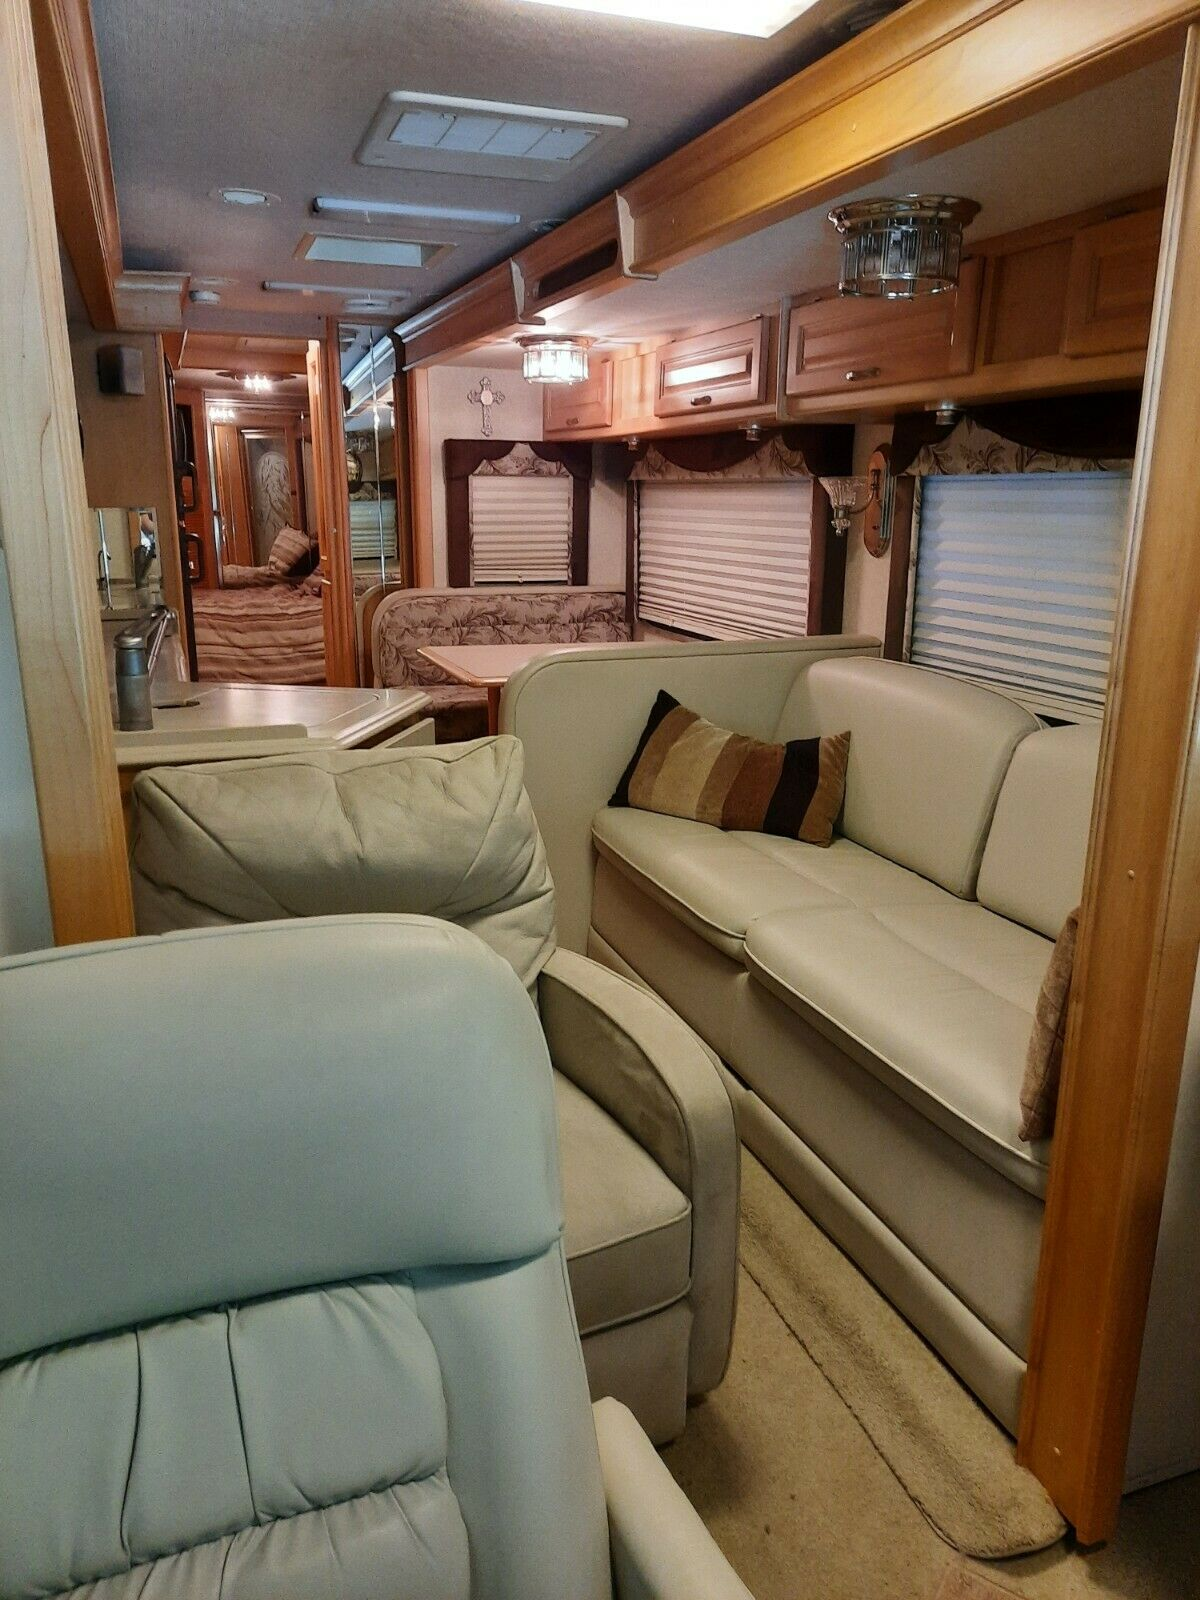 low miles 2004 National Tropical T350 camper